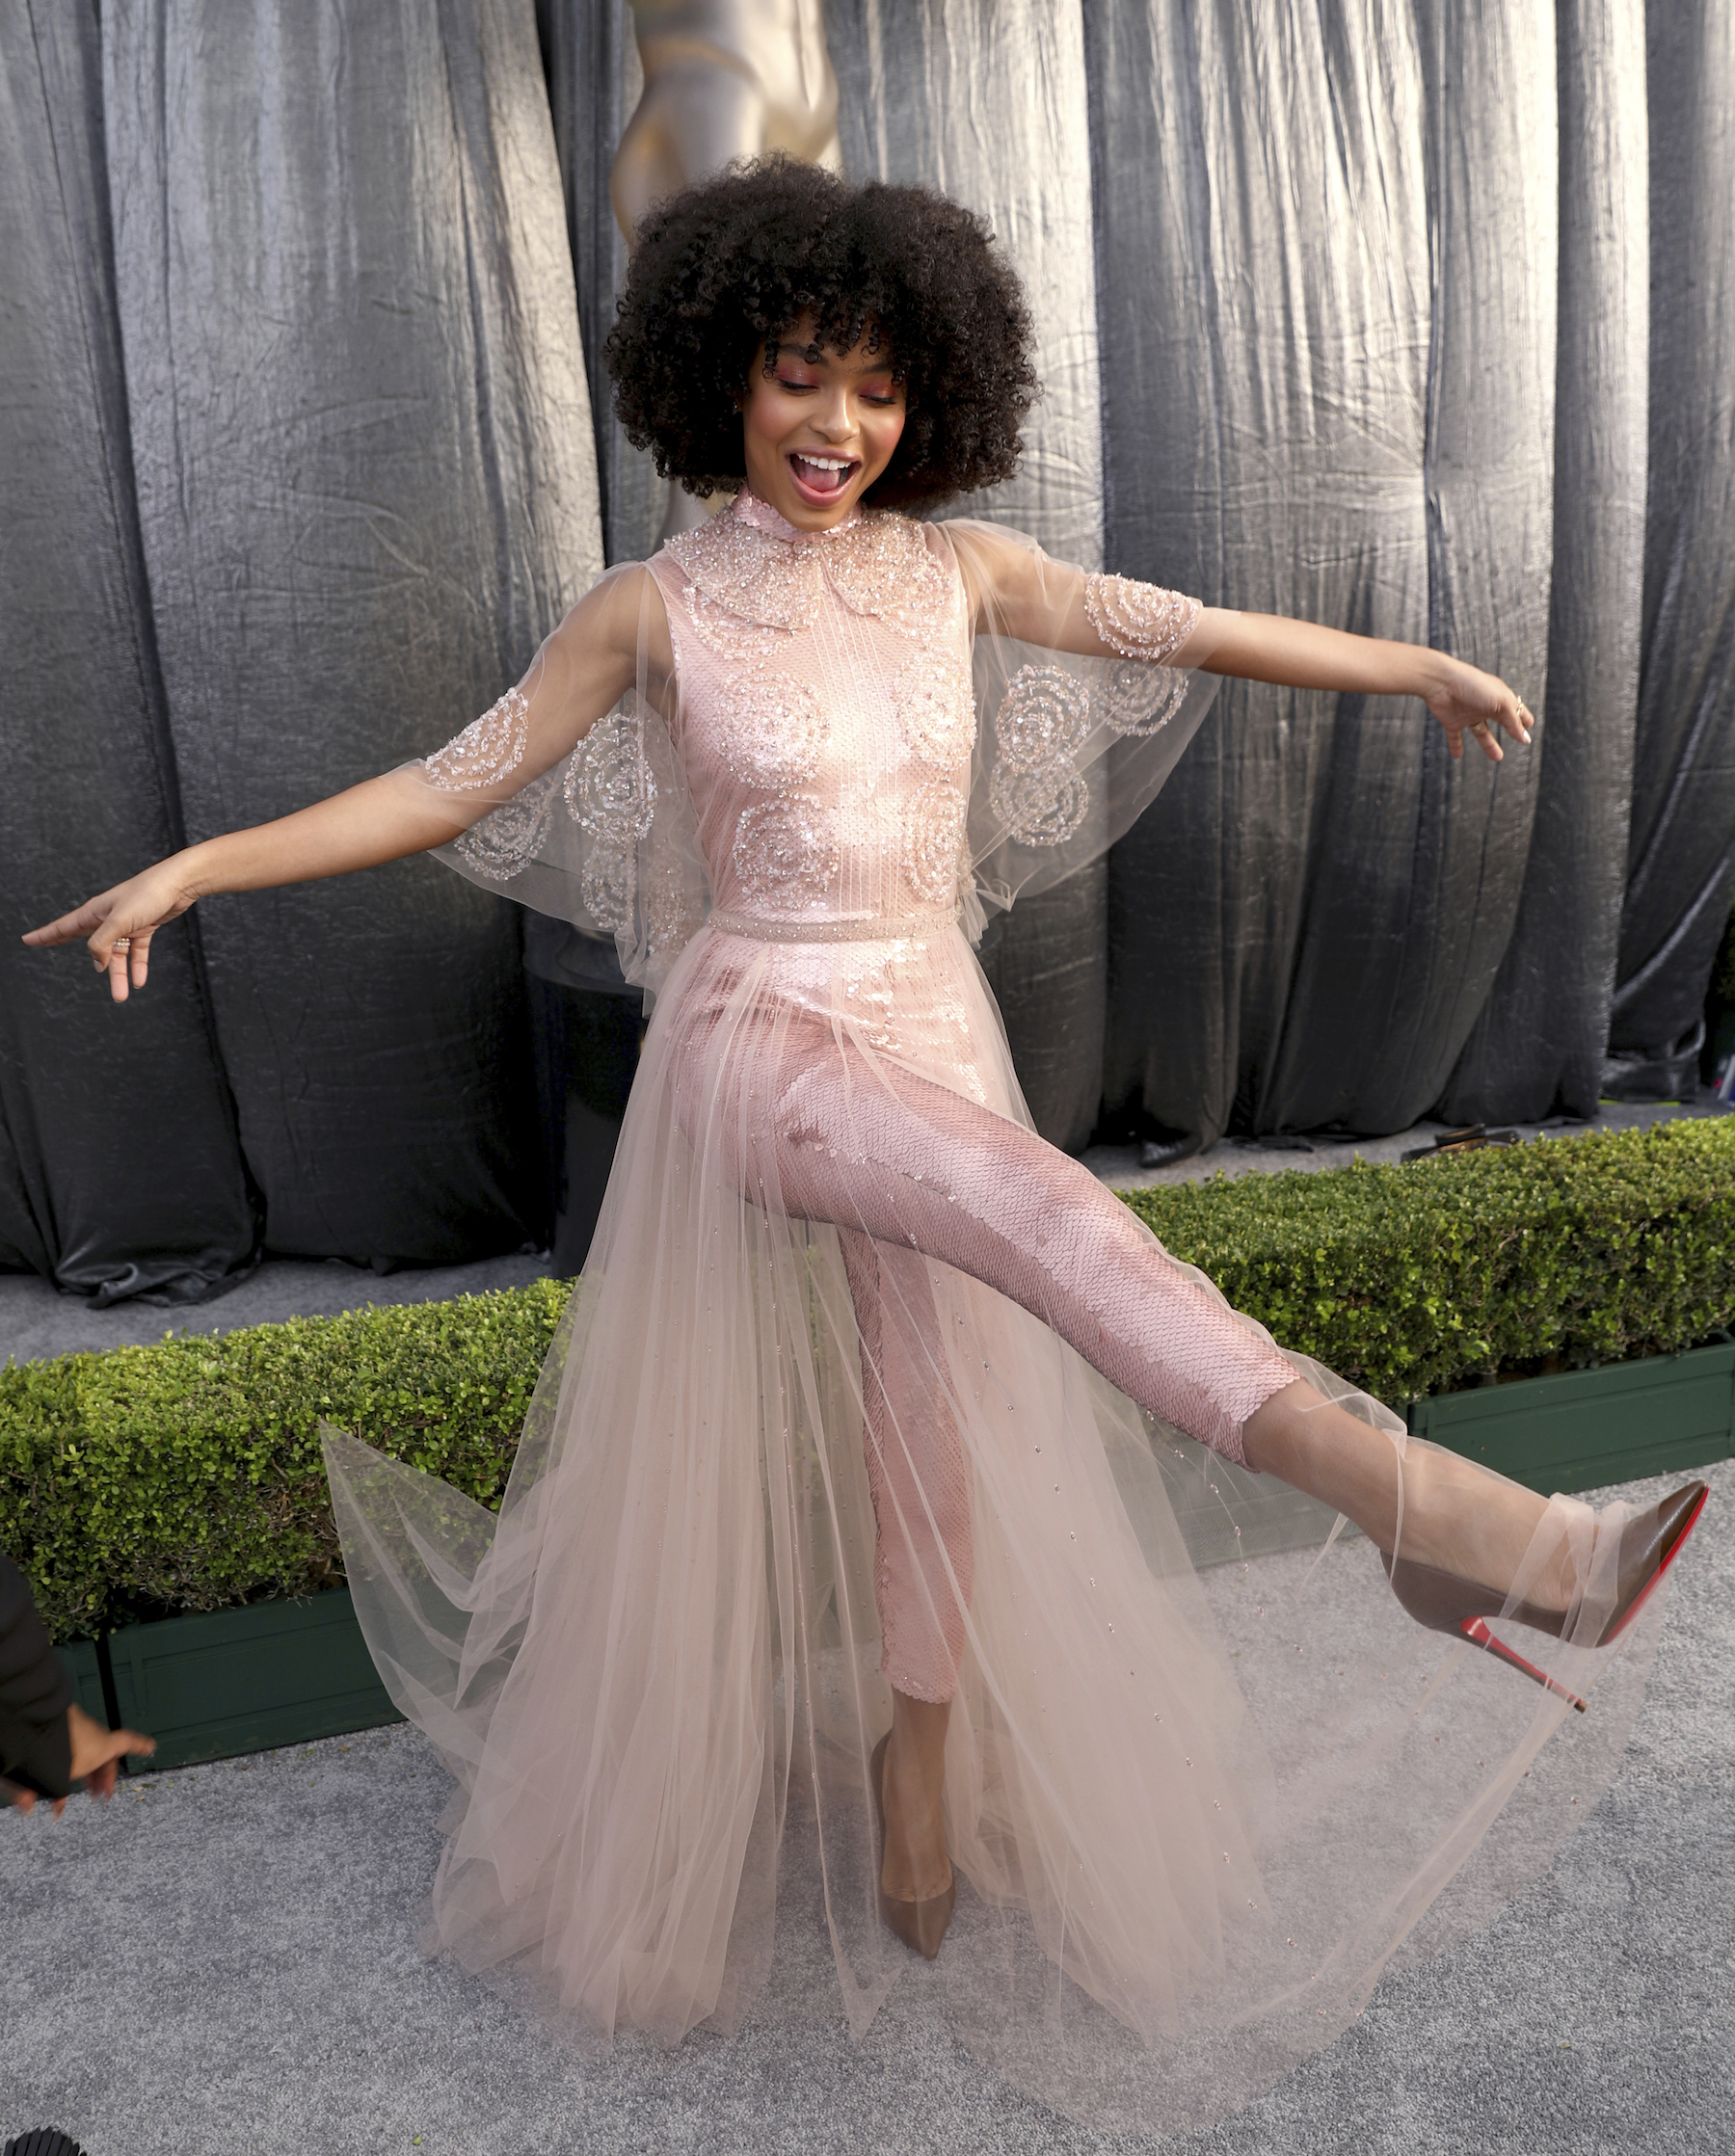 "<div class=""meta image-caption""><div class=""origin-logo origin-image ap""><span>AP</span></div><span class=""caption-text"">Yara Shahidi arrives at the 25th annual Screen Actors Guild Awards at the Shrine Auditorium & Expo Hall on Sunday, Jan. 27, 2019, in Los Angeles. (Matt Sayles/Invision/AP)</span></div>"